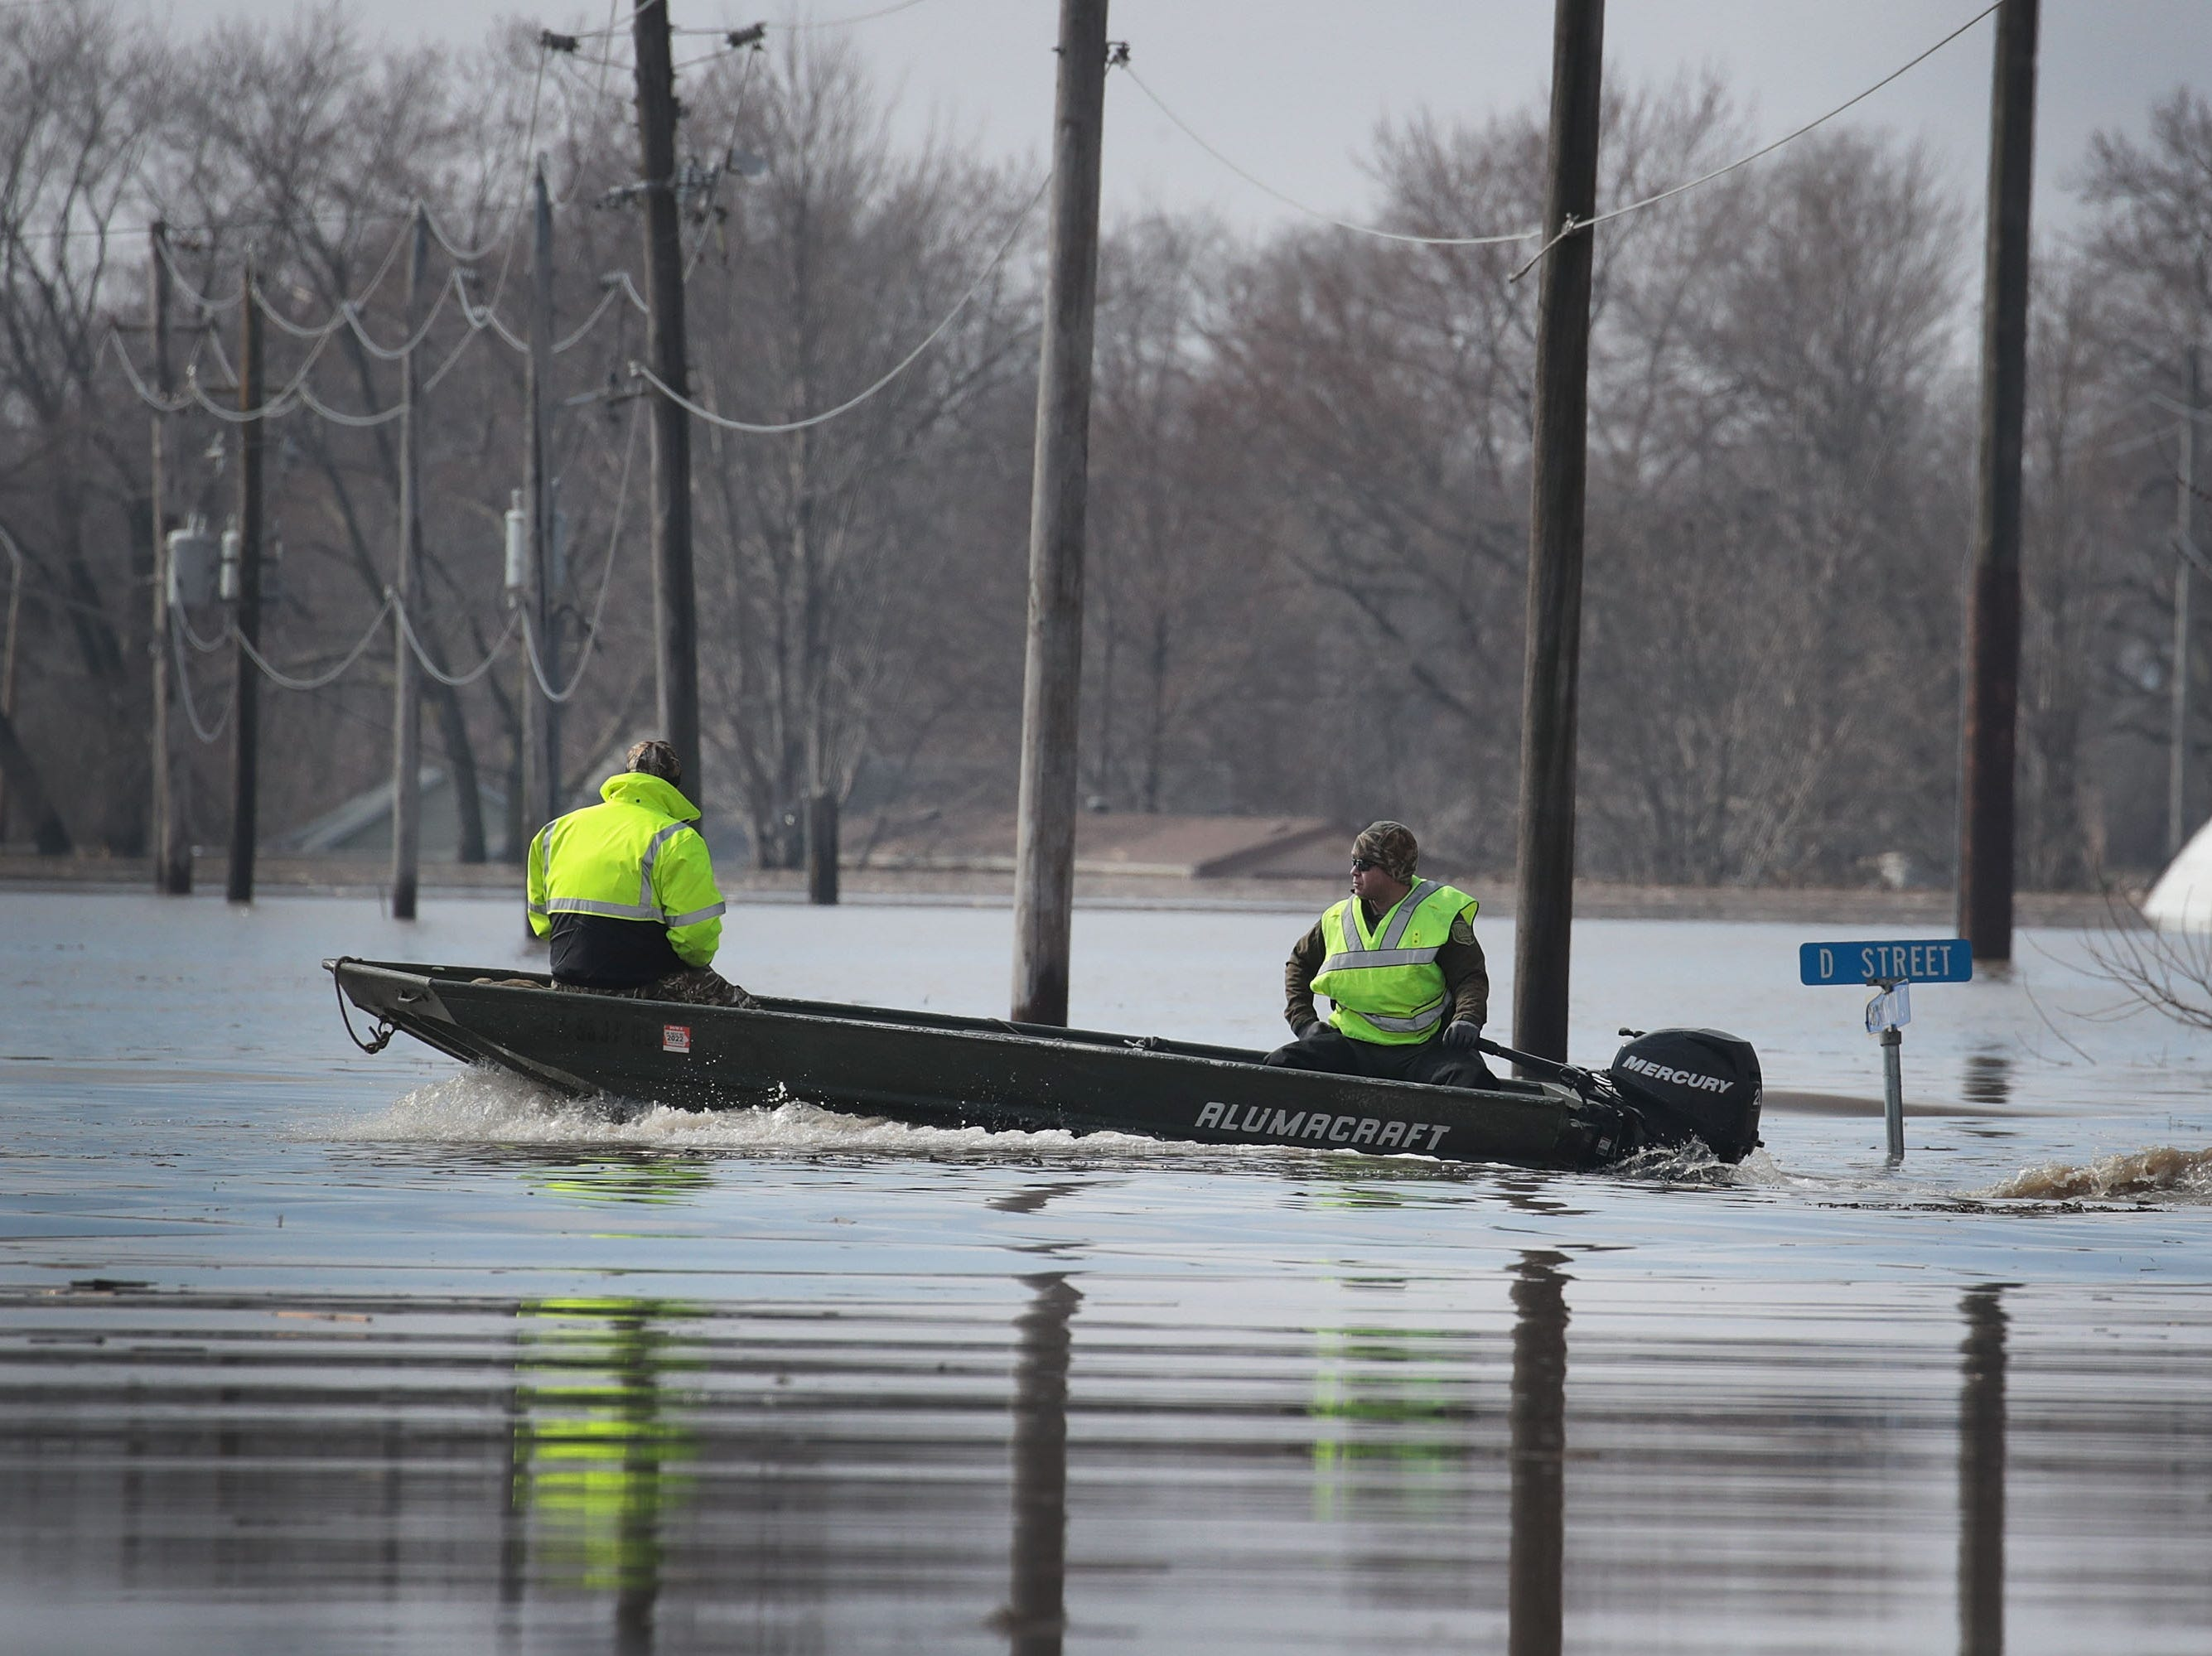 Boaters travel down a flooded street on March 20, 2019, in Hamburg, Iowa. Although flood water in the town has started to recede many homes and businesses remain surrounded by water.